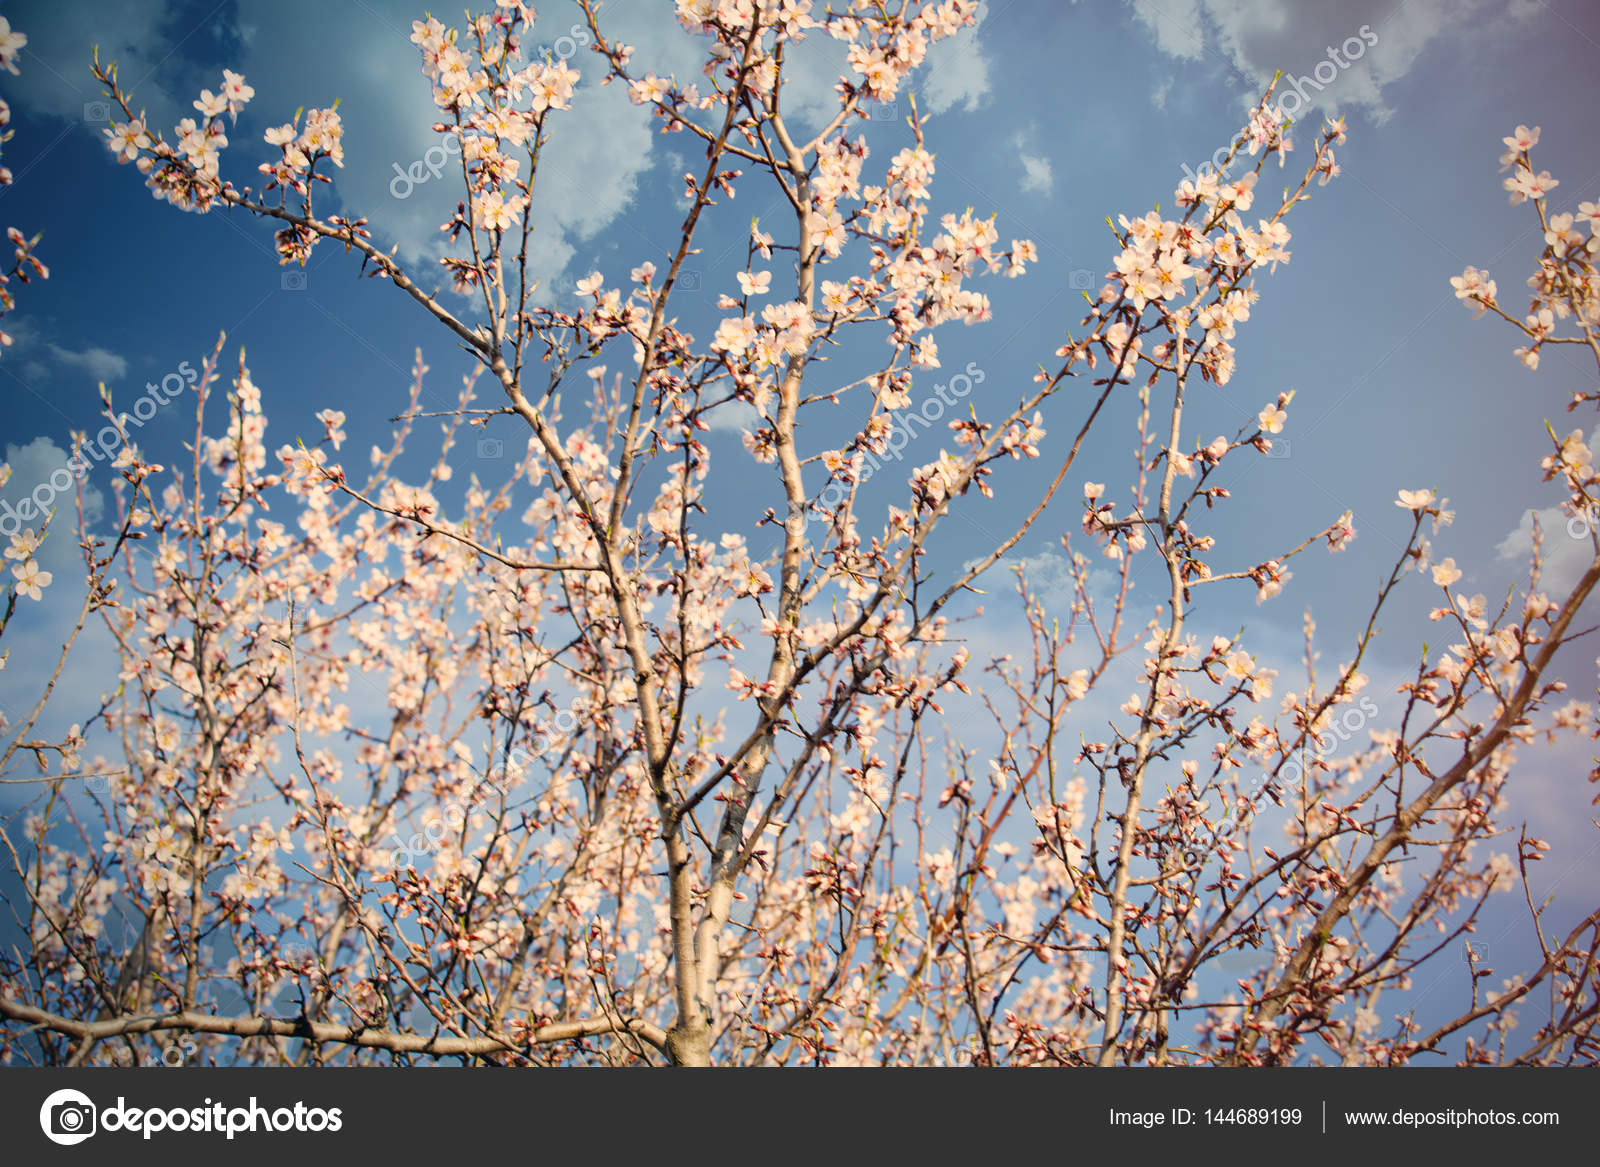 Blooming Trees In Spring Stock Photo Massonforstock 144689199